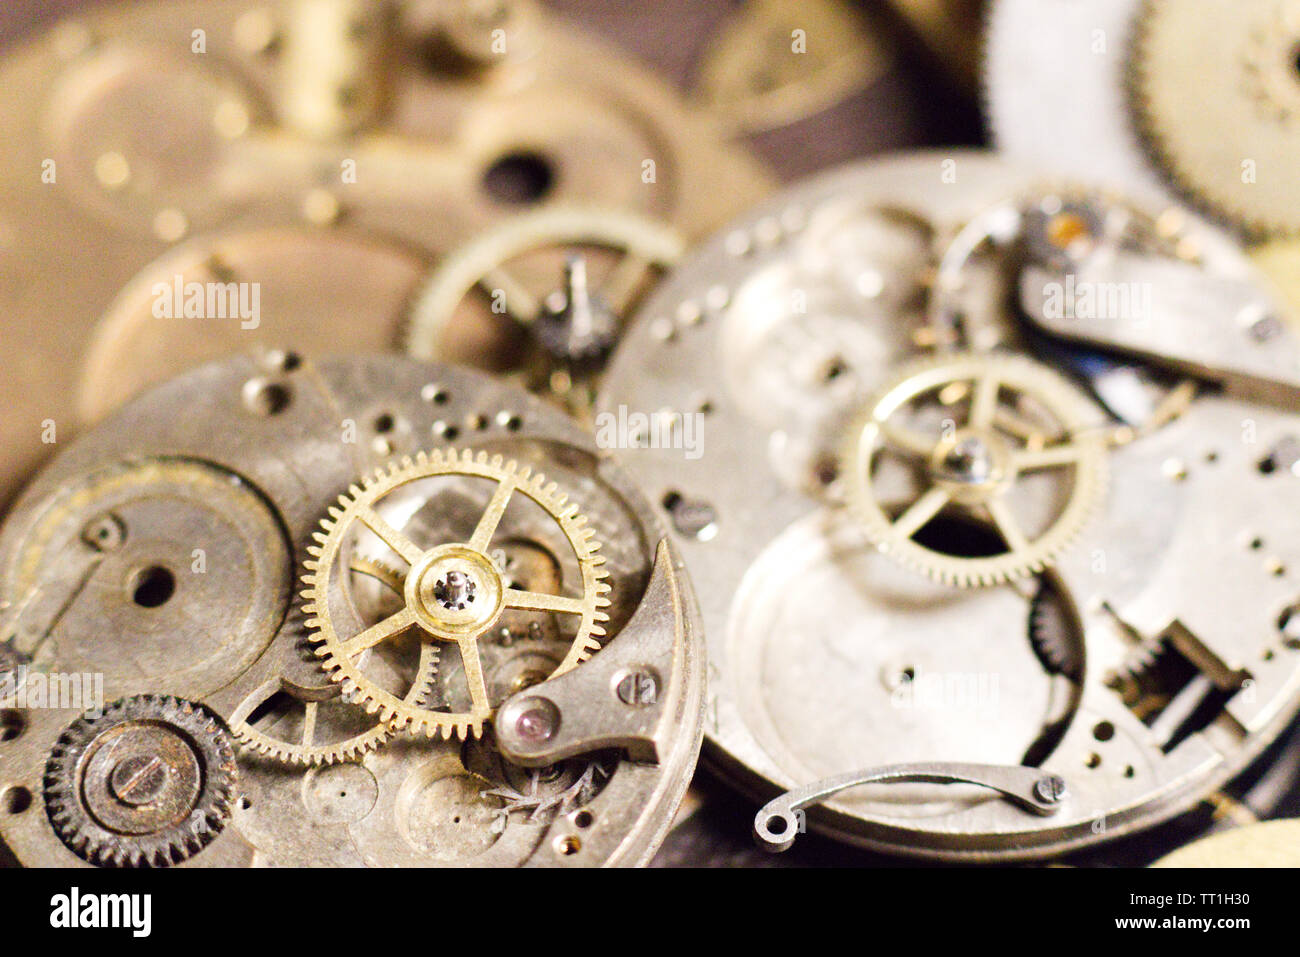 Watch Parts Stock Photos & Watch Parts Stock Images - Alamy